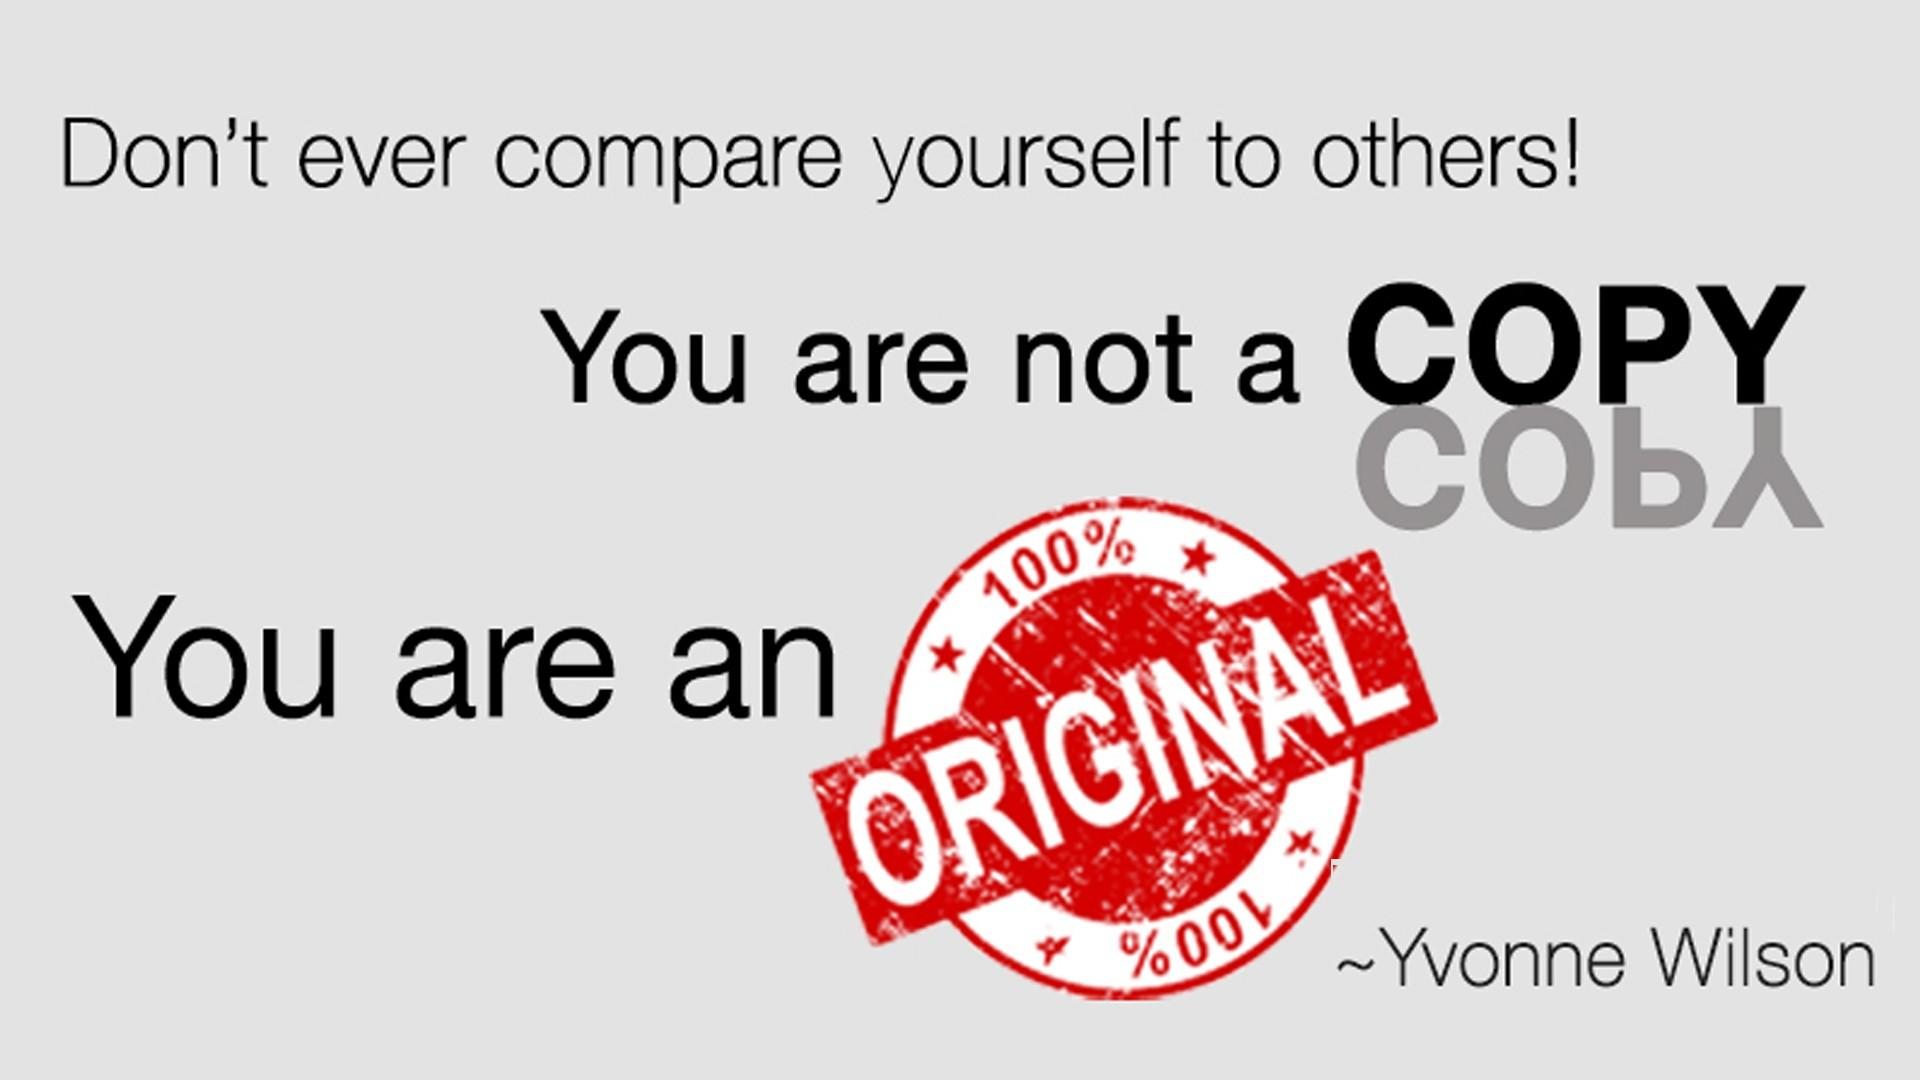 Yvonne Wilson Quote - Dont ever compare yourself to others. You are not a copy. You are an original.